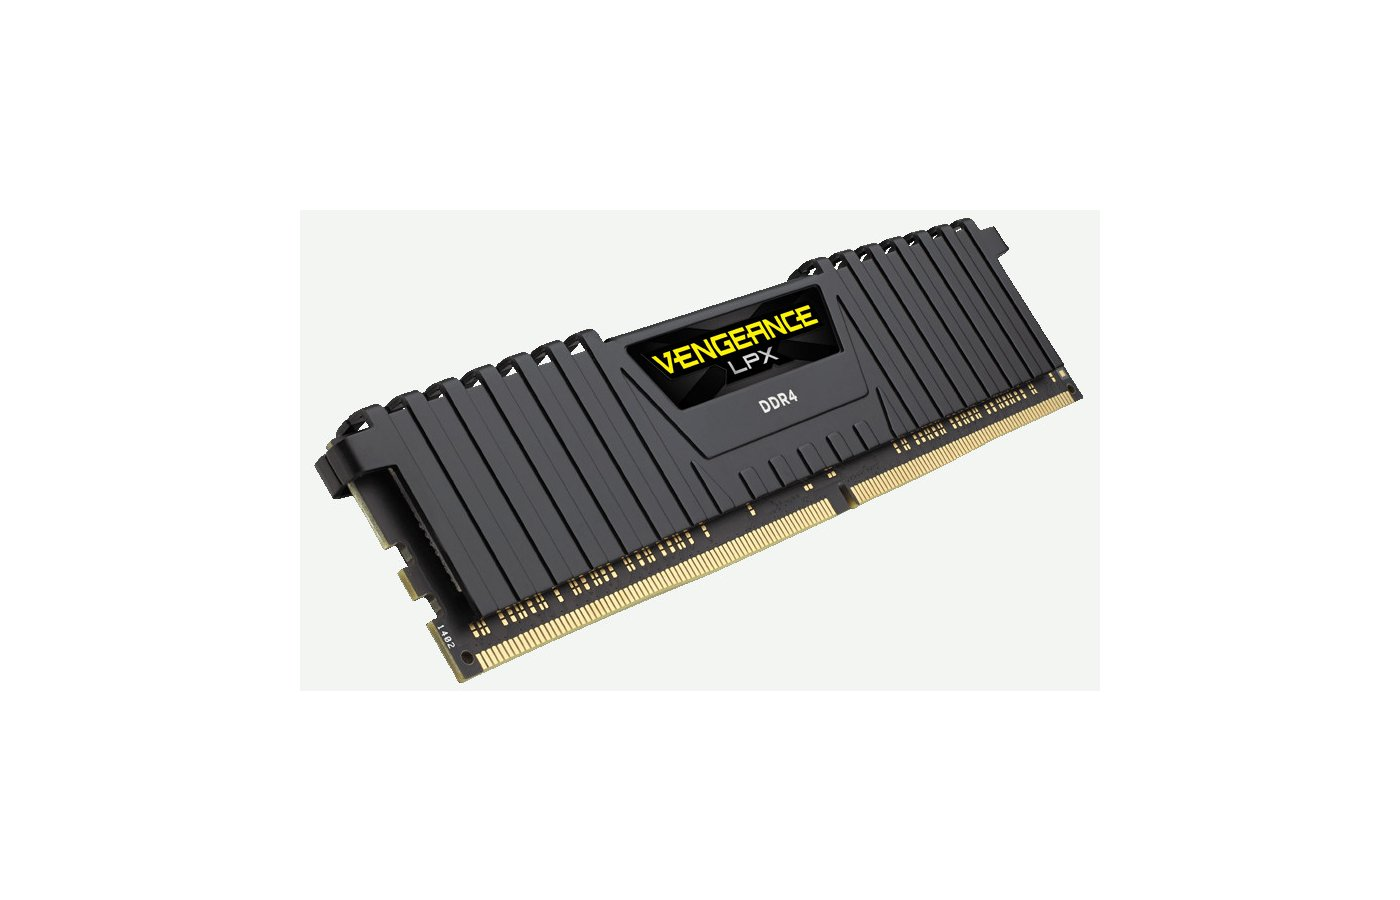 Оперативная память Corsair CMK16GX4M1B3000C15 RTL PC4-24000 DDR4 16Gb 3000MHz CL15 DIMM